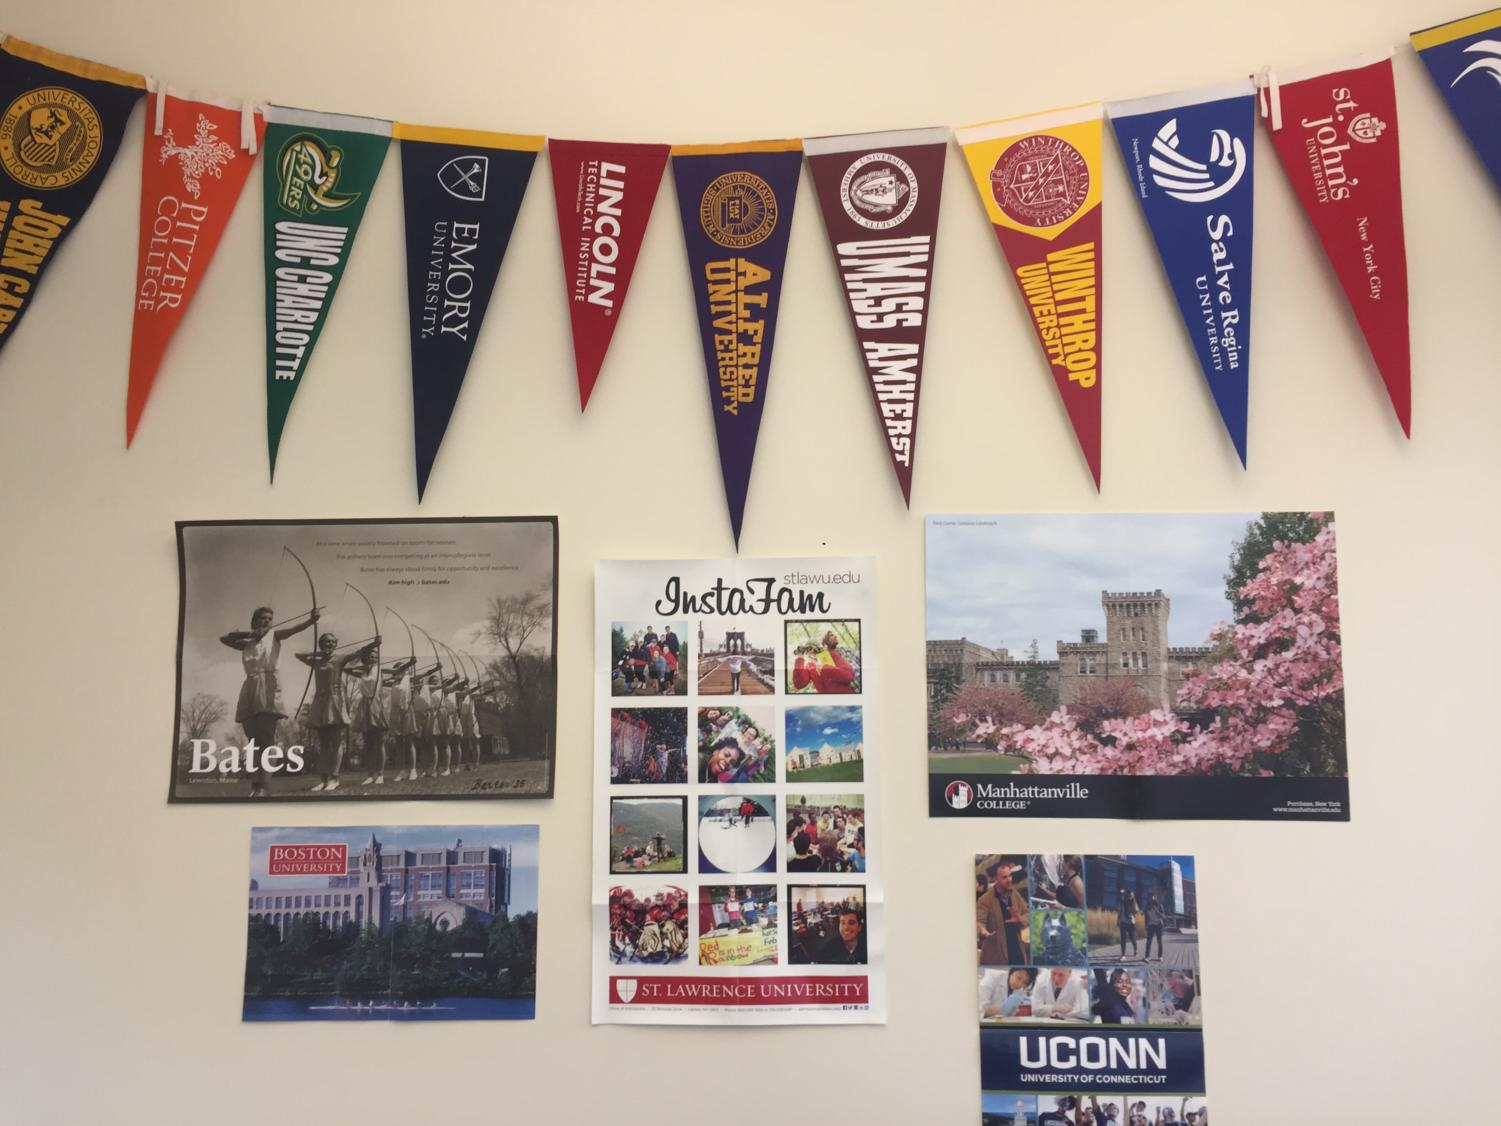 College Posters and Flags decorating and adding some color to the Career Center walls.